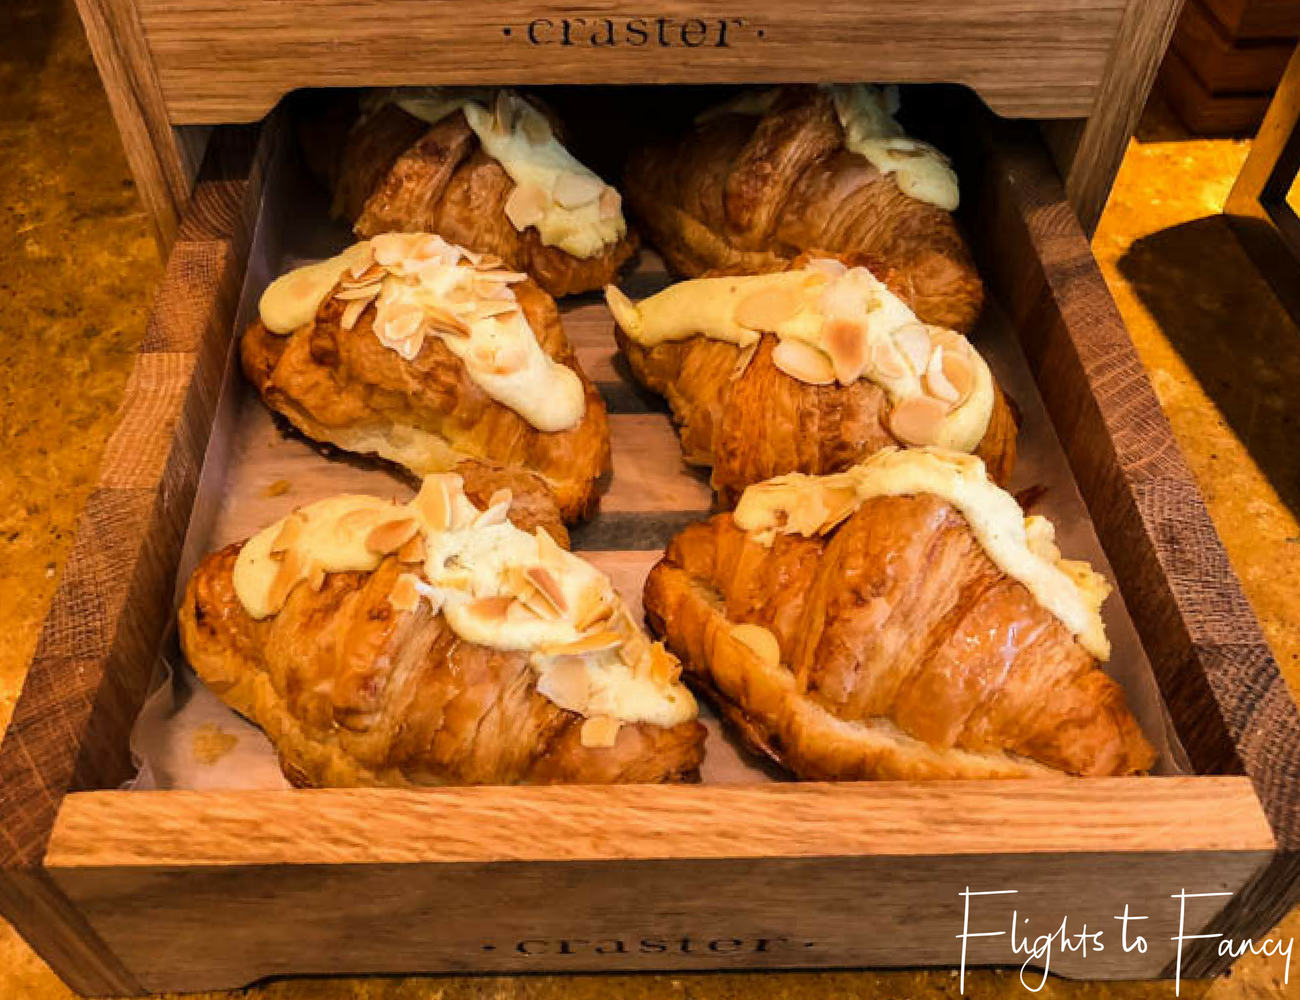 Flights To Fancy @ Raffles Makati Manila - Start the day with a tasty croissant